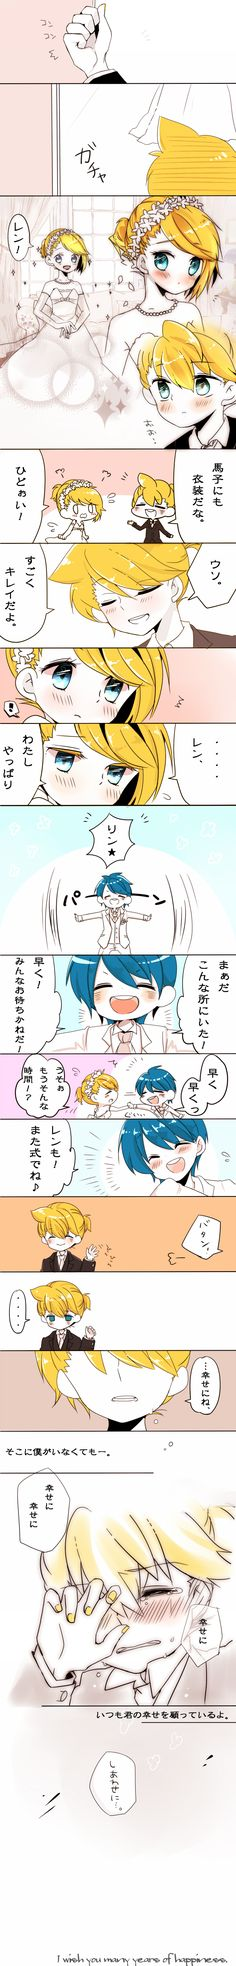 Vocaloid Comic - Kaito, Len and Rin LEN! Don't cry, it makes me sad as well ;_;